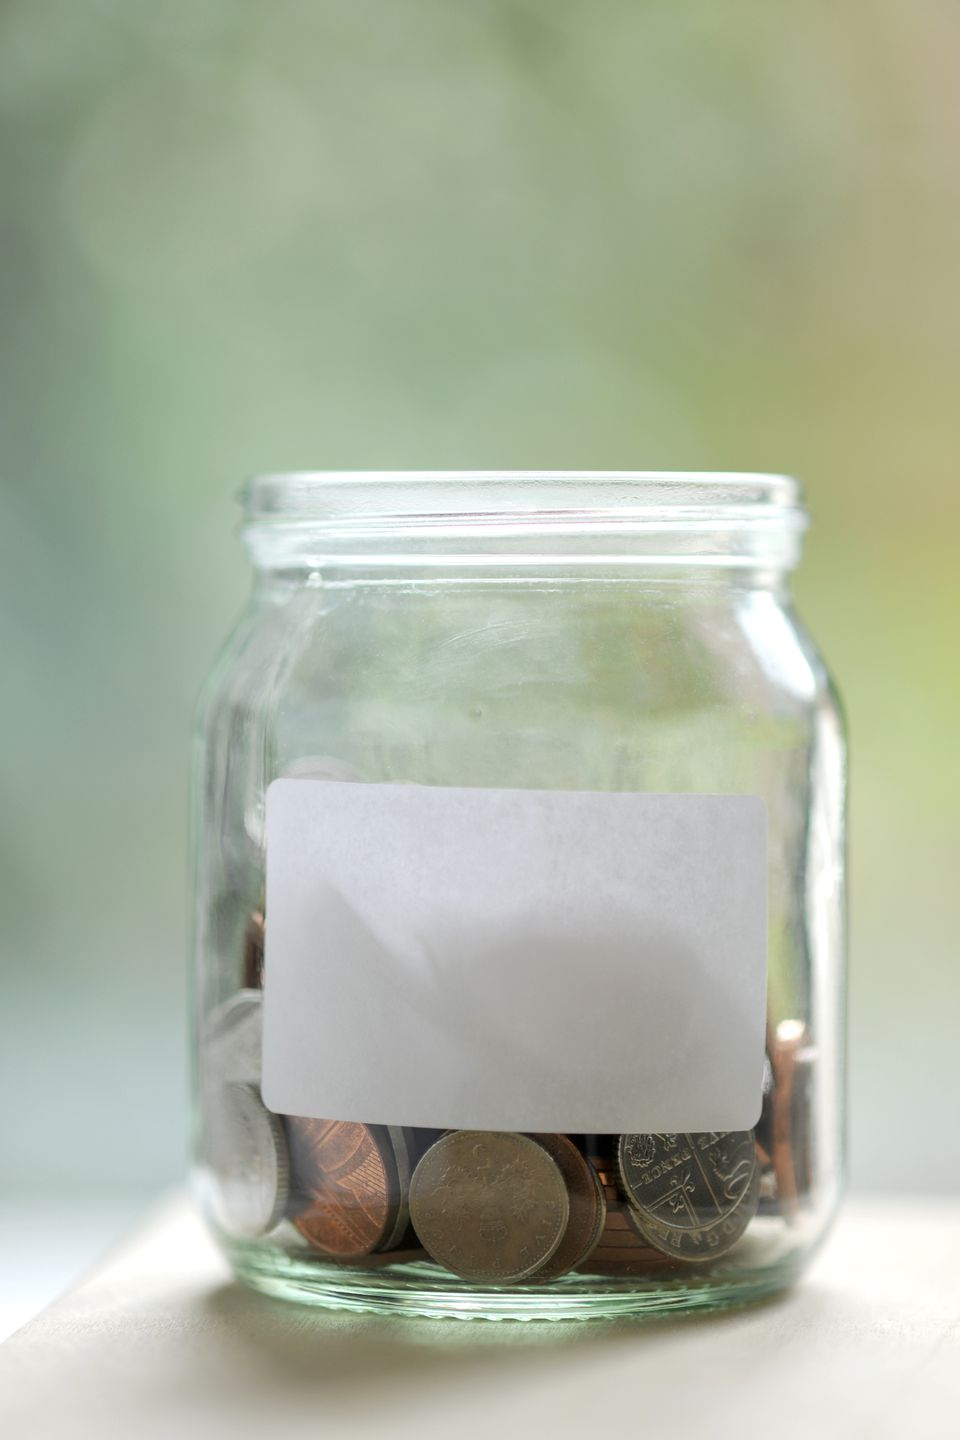 Jam jar filled with coins and blank label